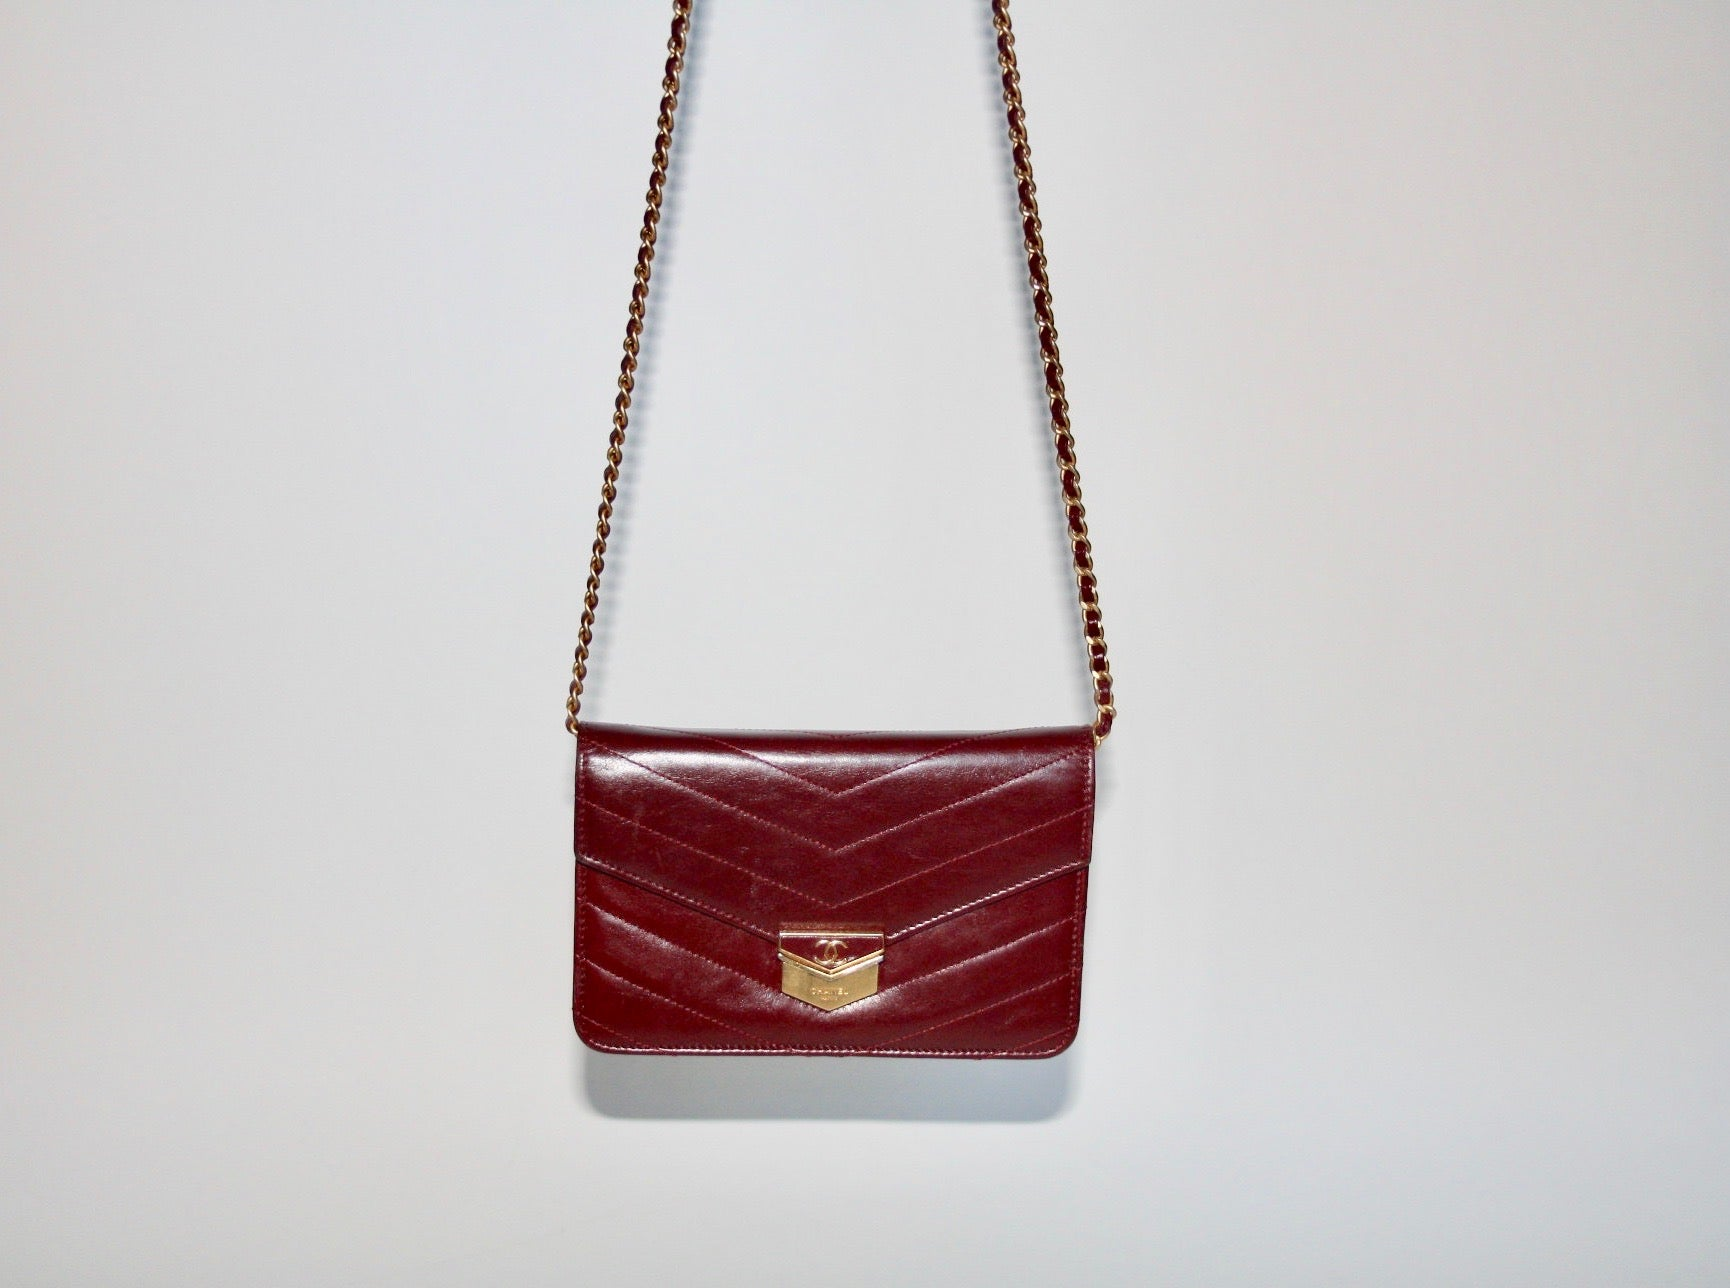 Chanel WOC Bordeaux - Iconics Preloved Luxury